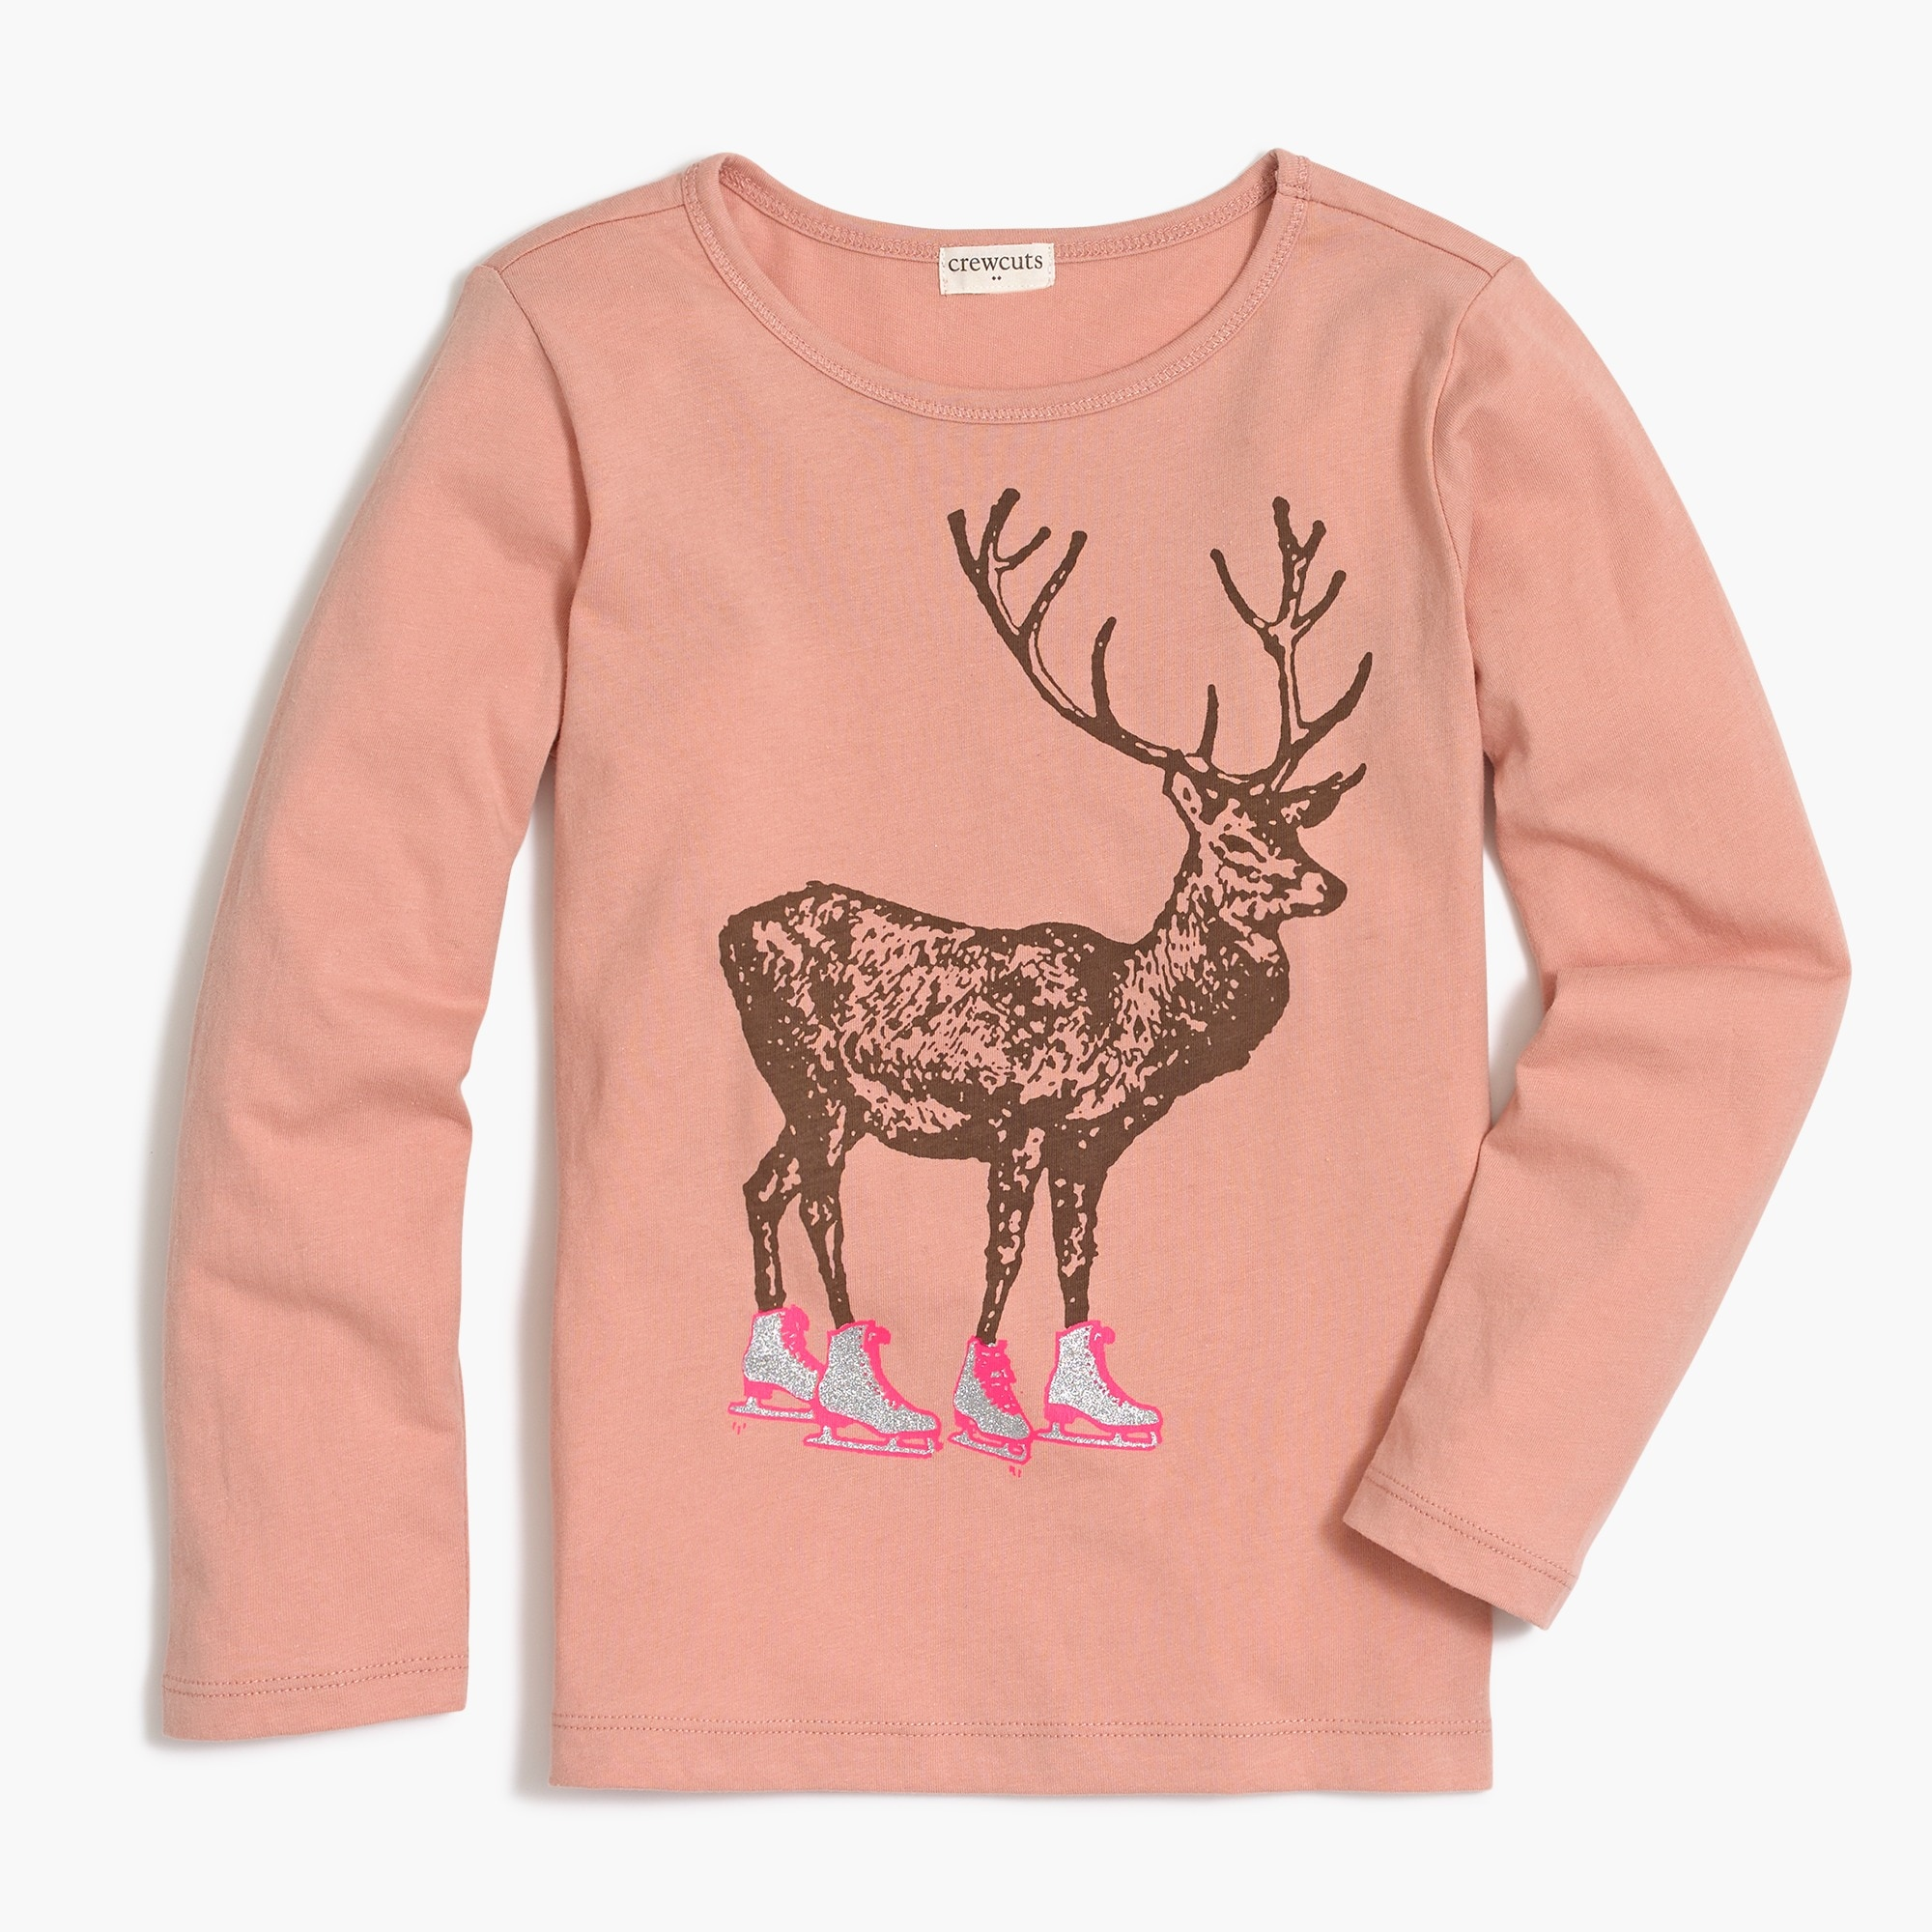 factory girls Girls' long-sleeve ice-skating deer graphic T-shirt